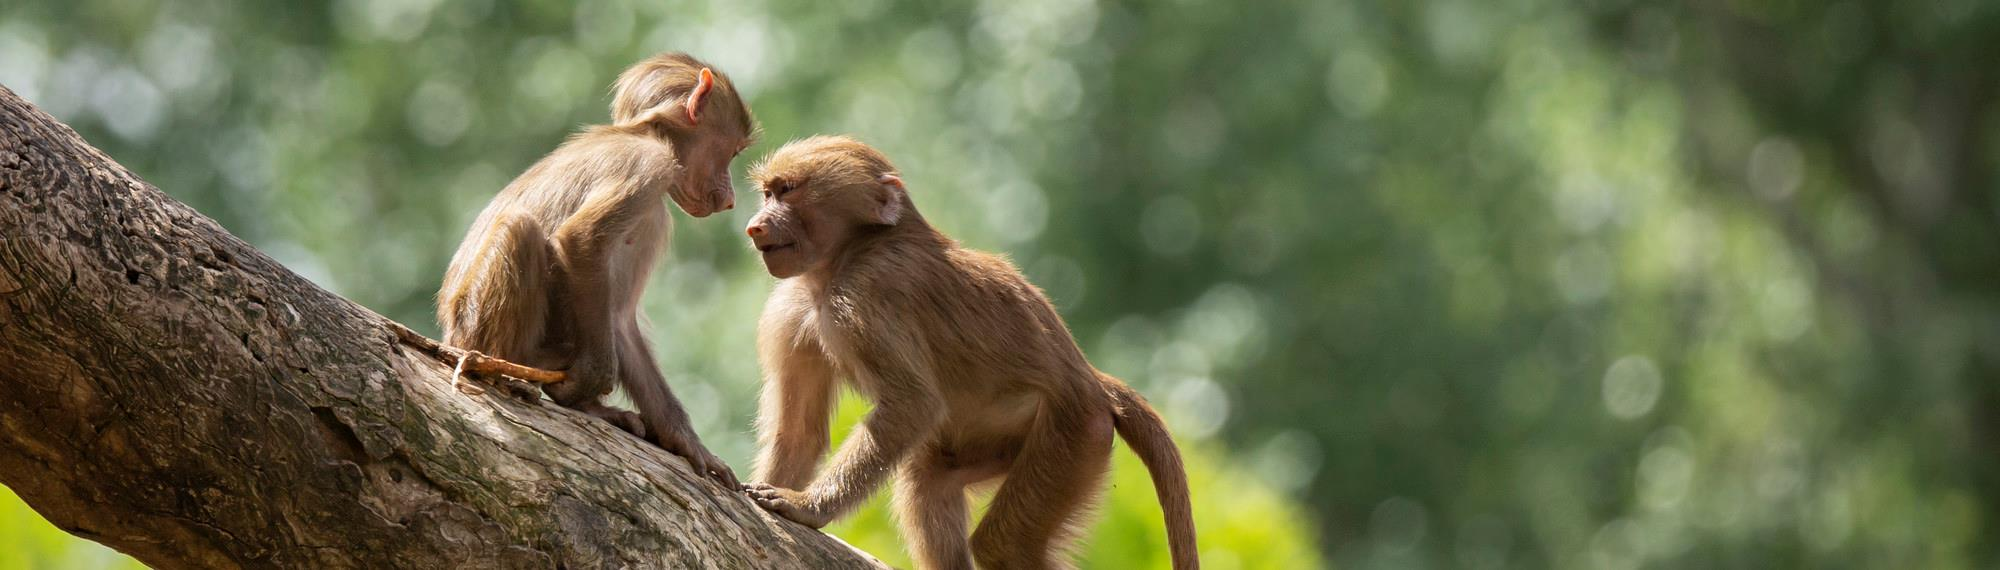 Two young Baboons playing together on a tree branch.